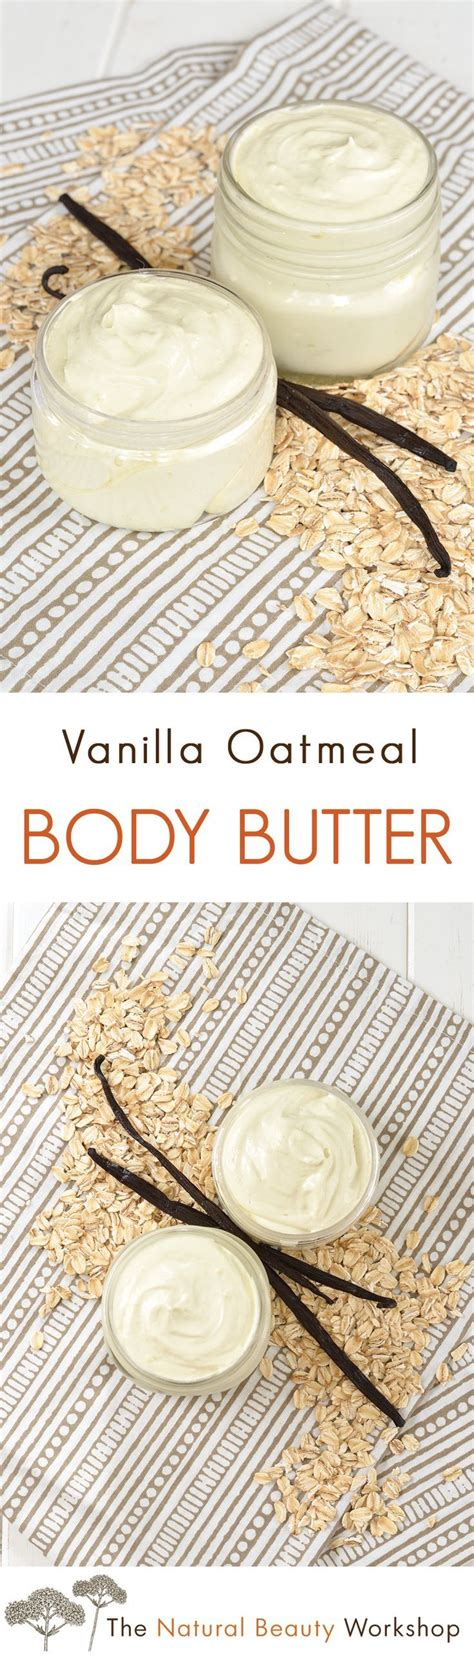 Diy Vanilla Body Butter diy skin care recipes vanilla oatmeal